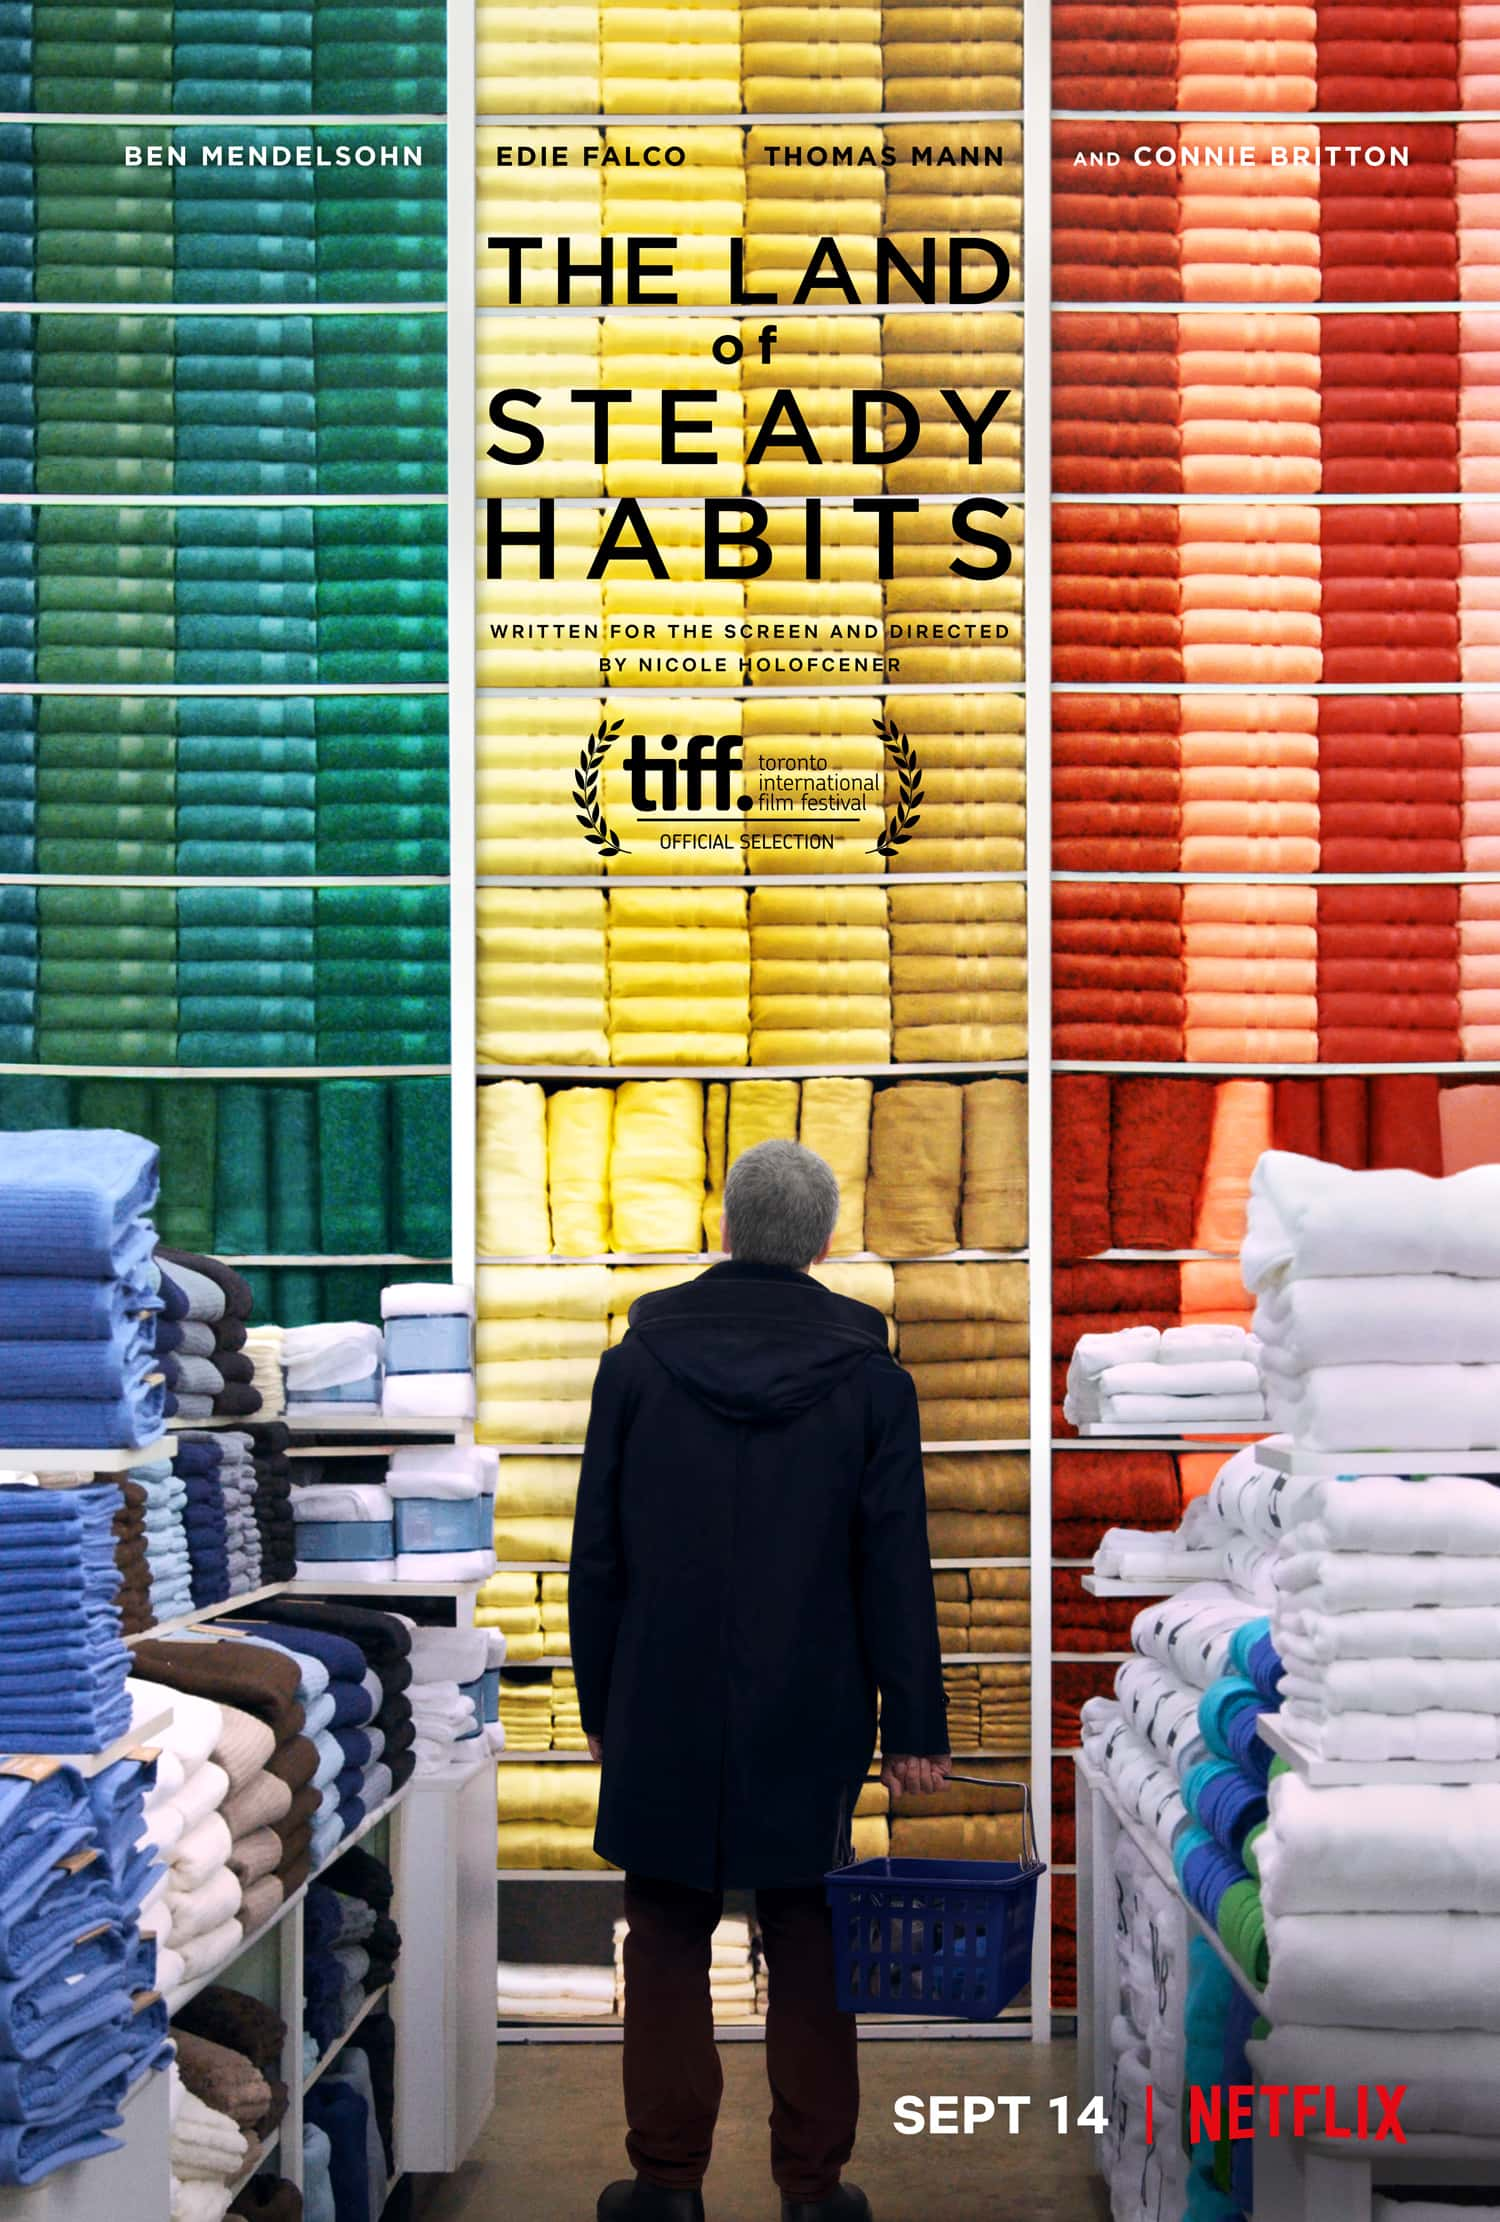 'The Land of Steady Habits' will begin streaming on Netflix on September 14.